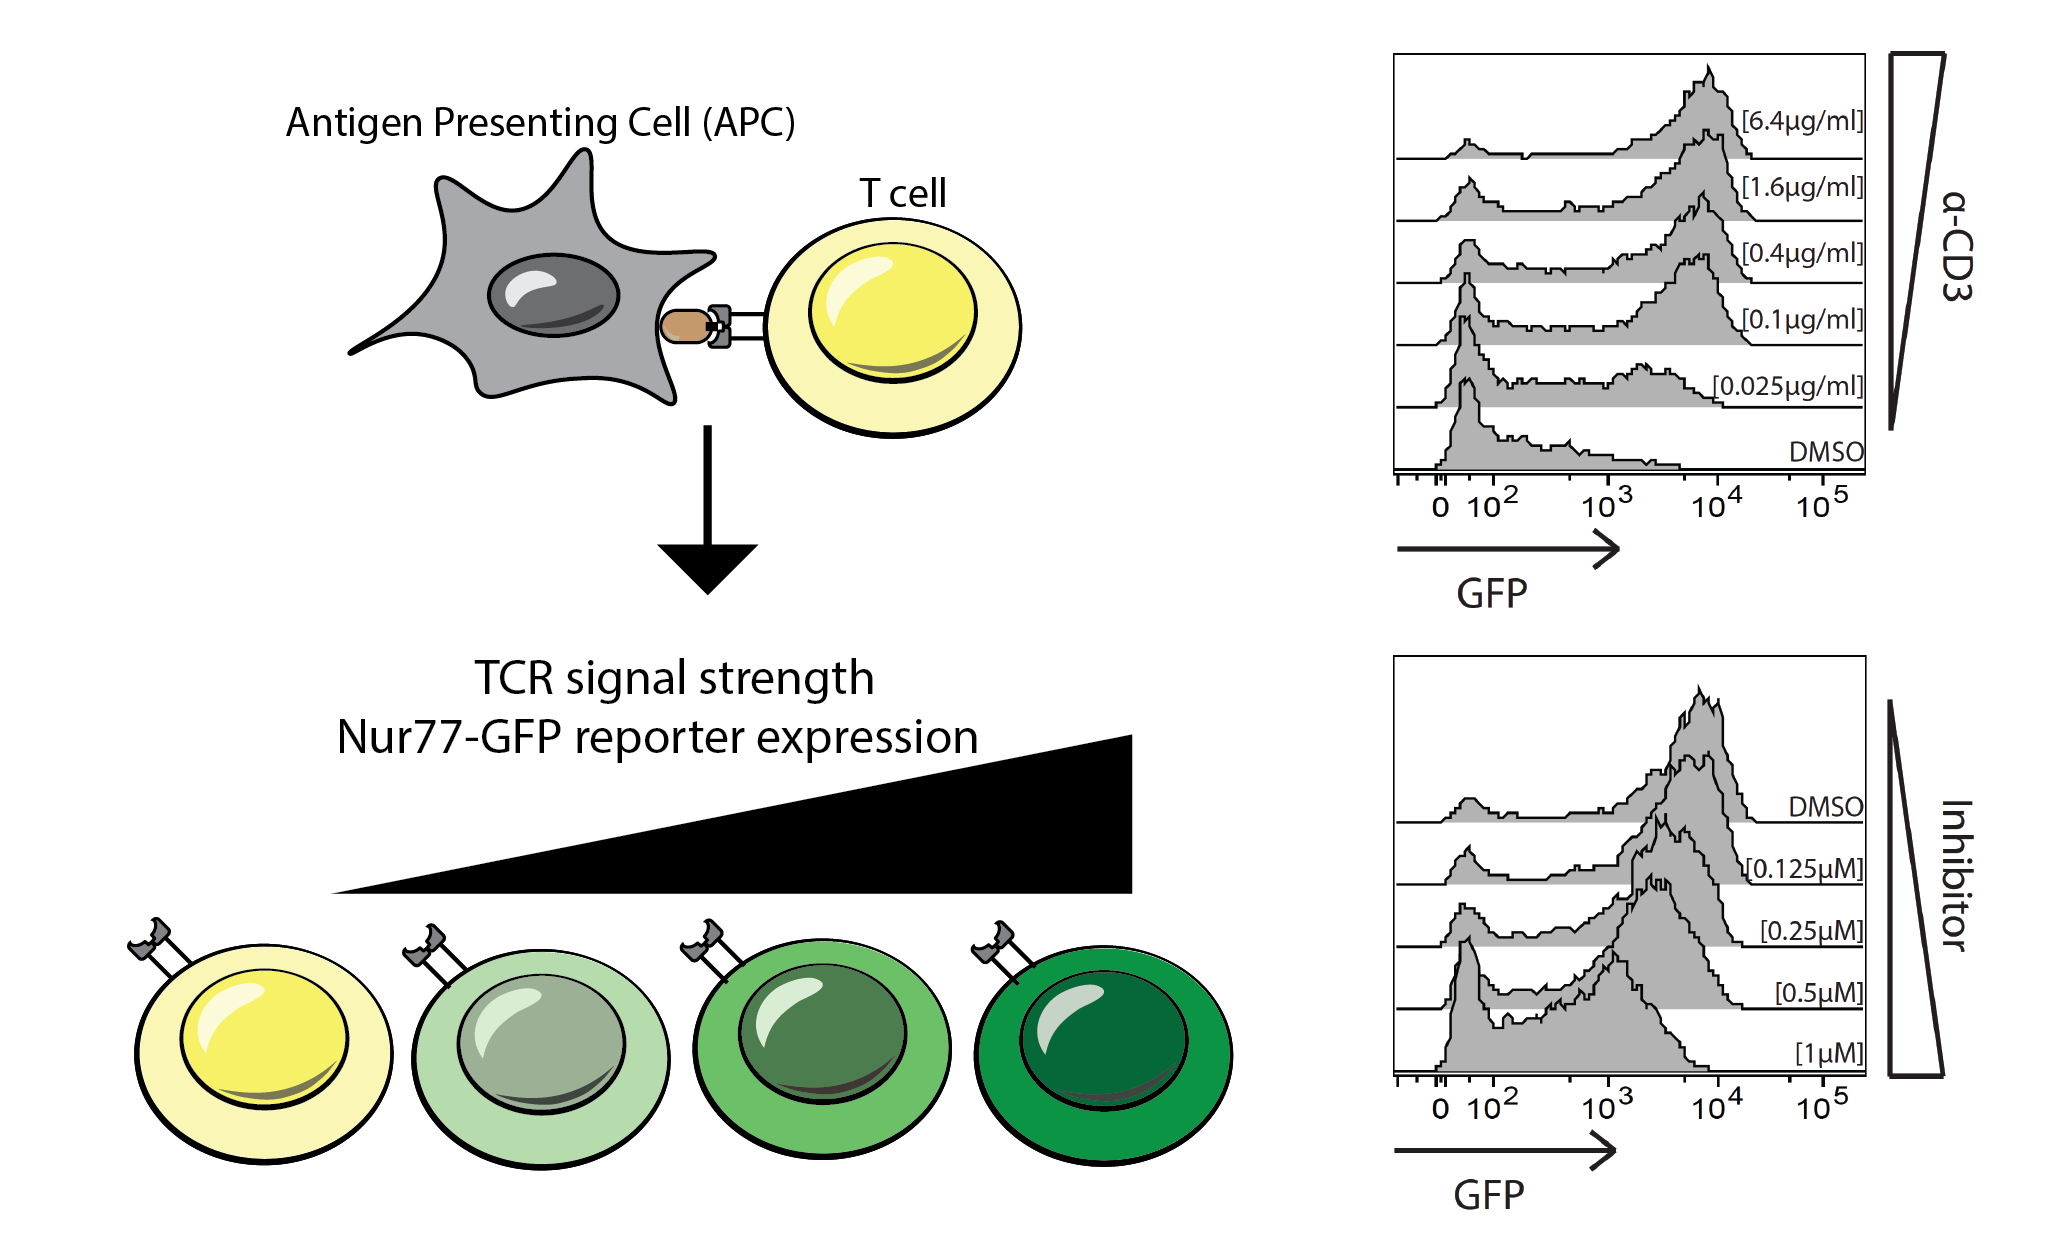 TCR signal strength Nur77-GFP reporter expression